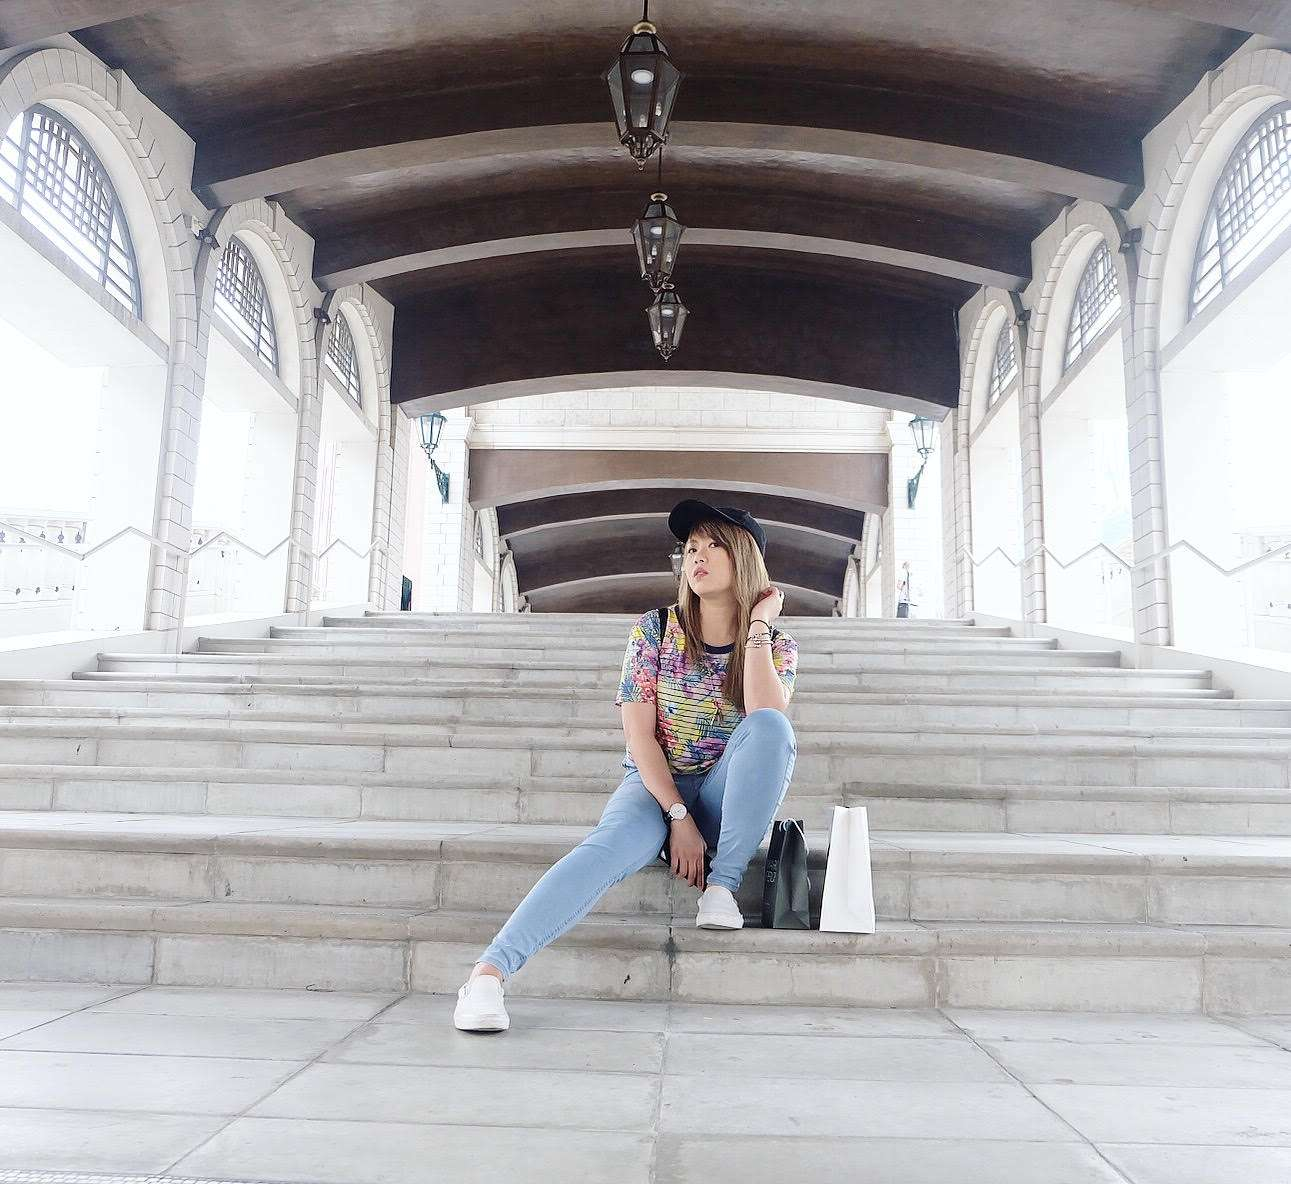 A girl poses outside in Macau on some steps, wearing a dark hat, multicolored top, jeans, and white shoes.